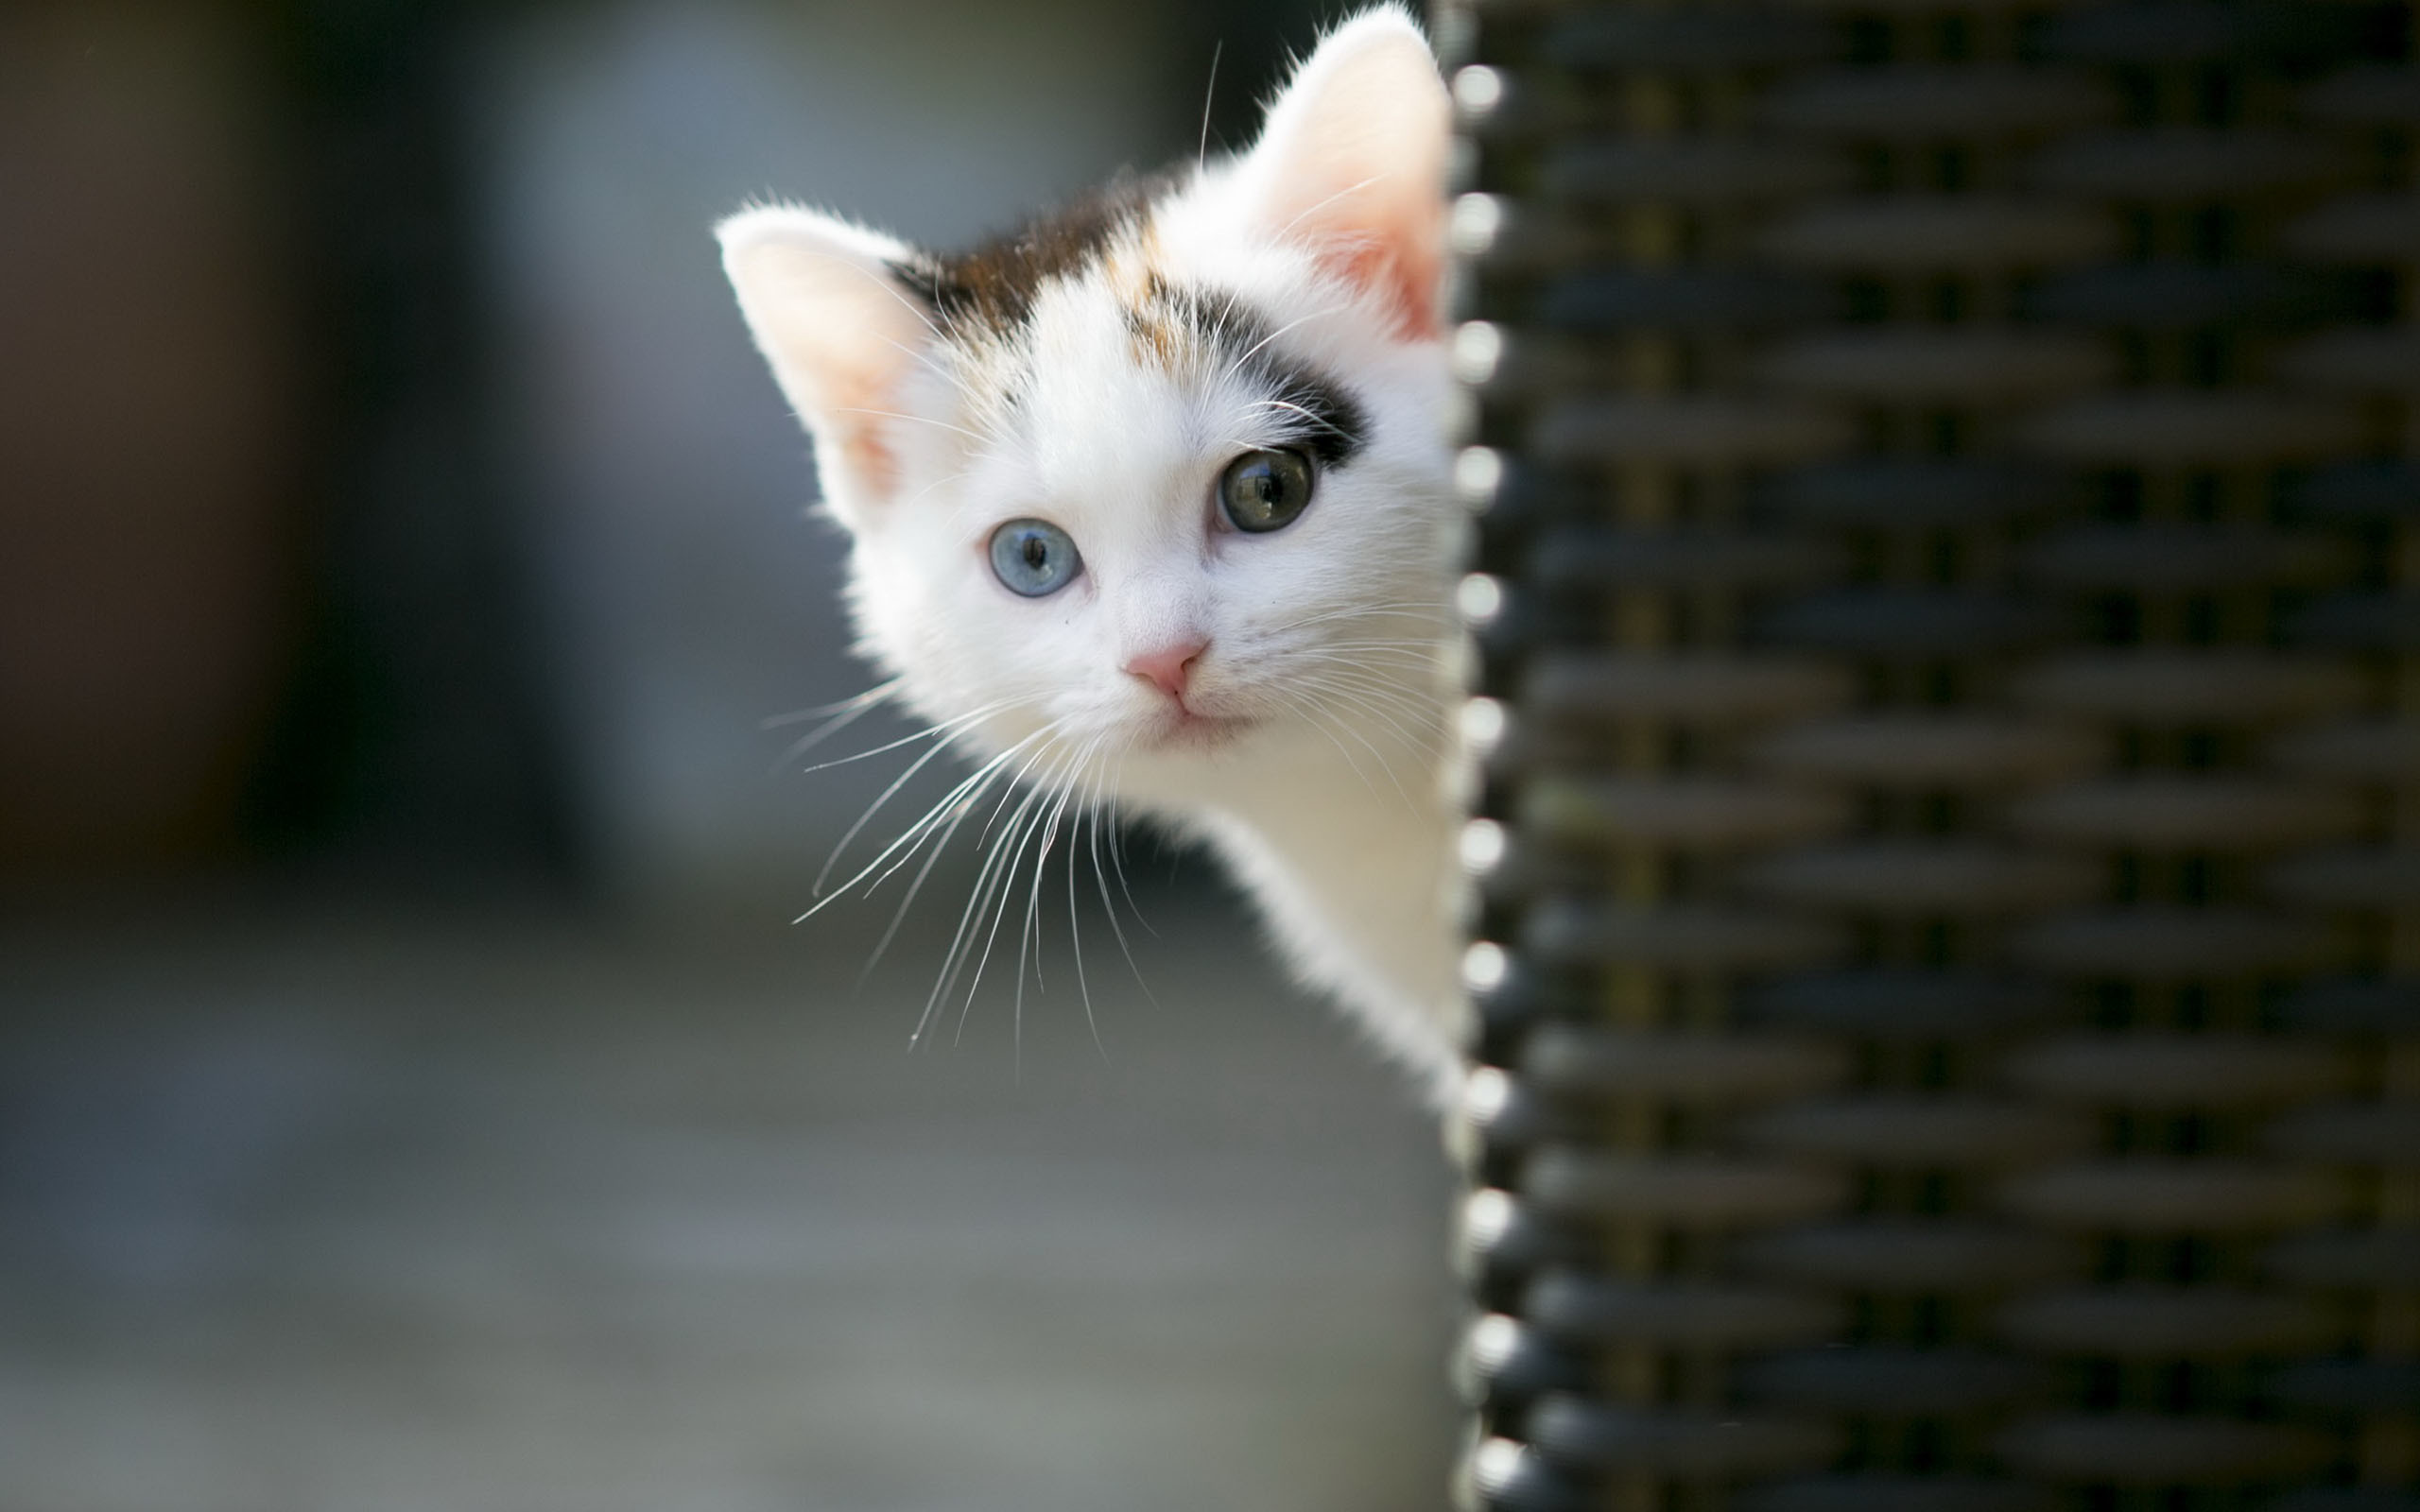 Animals Wallpaper: Cute Cat Wallpapers Images for HD Wallpaper .